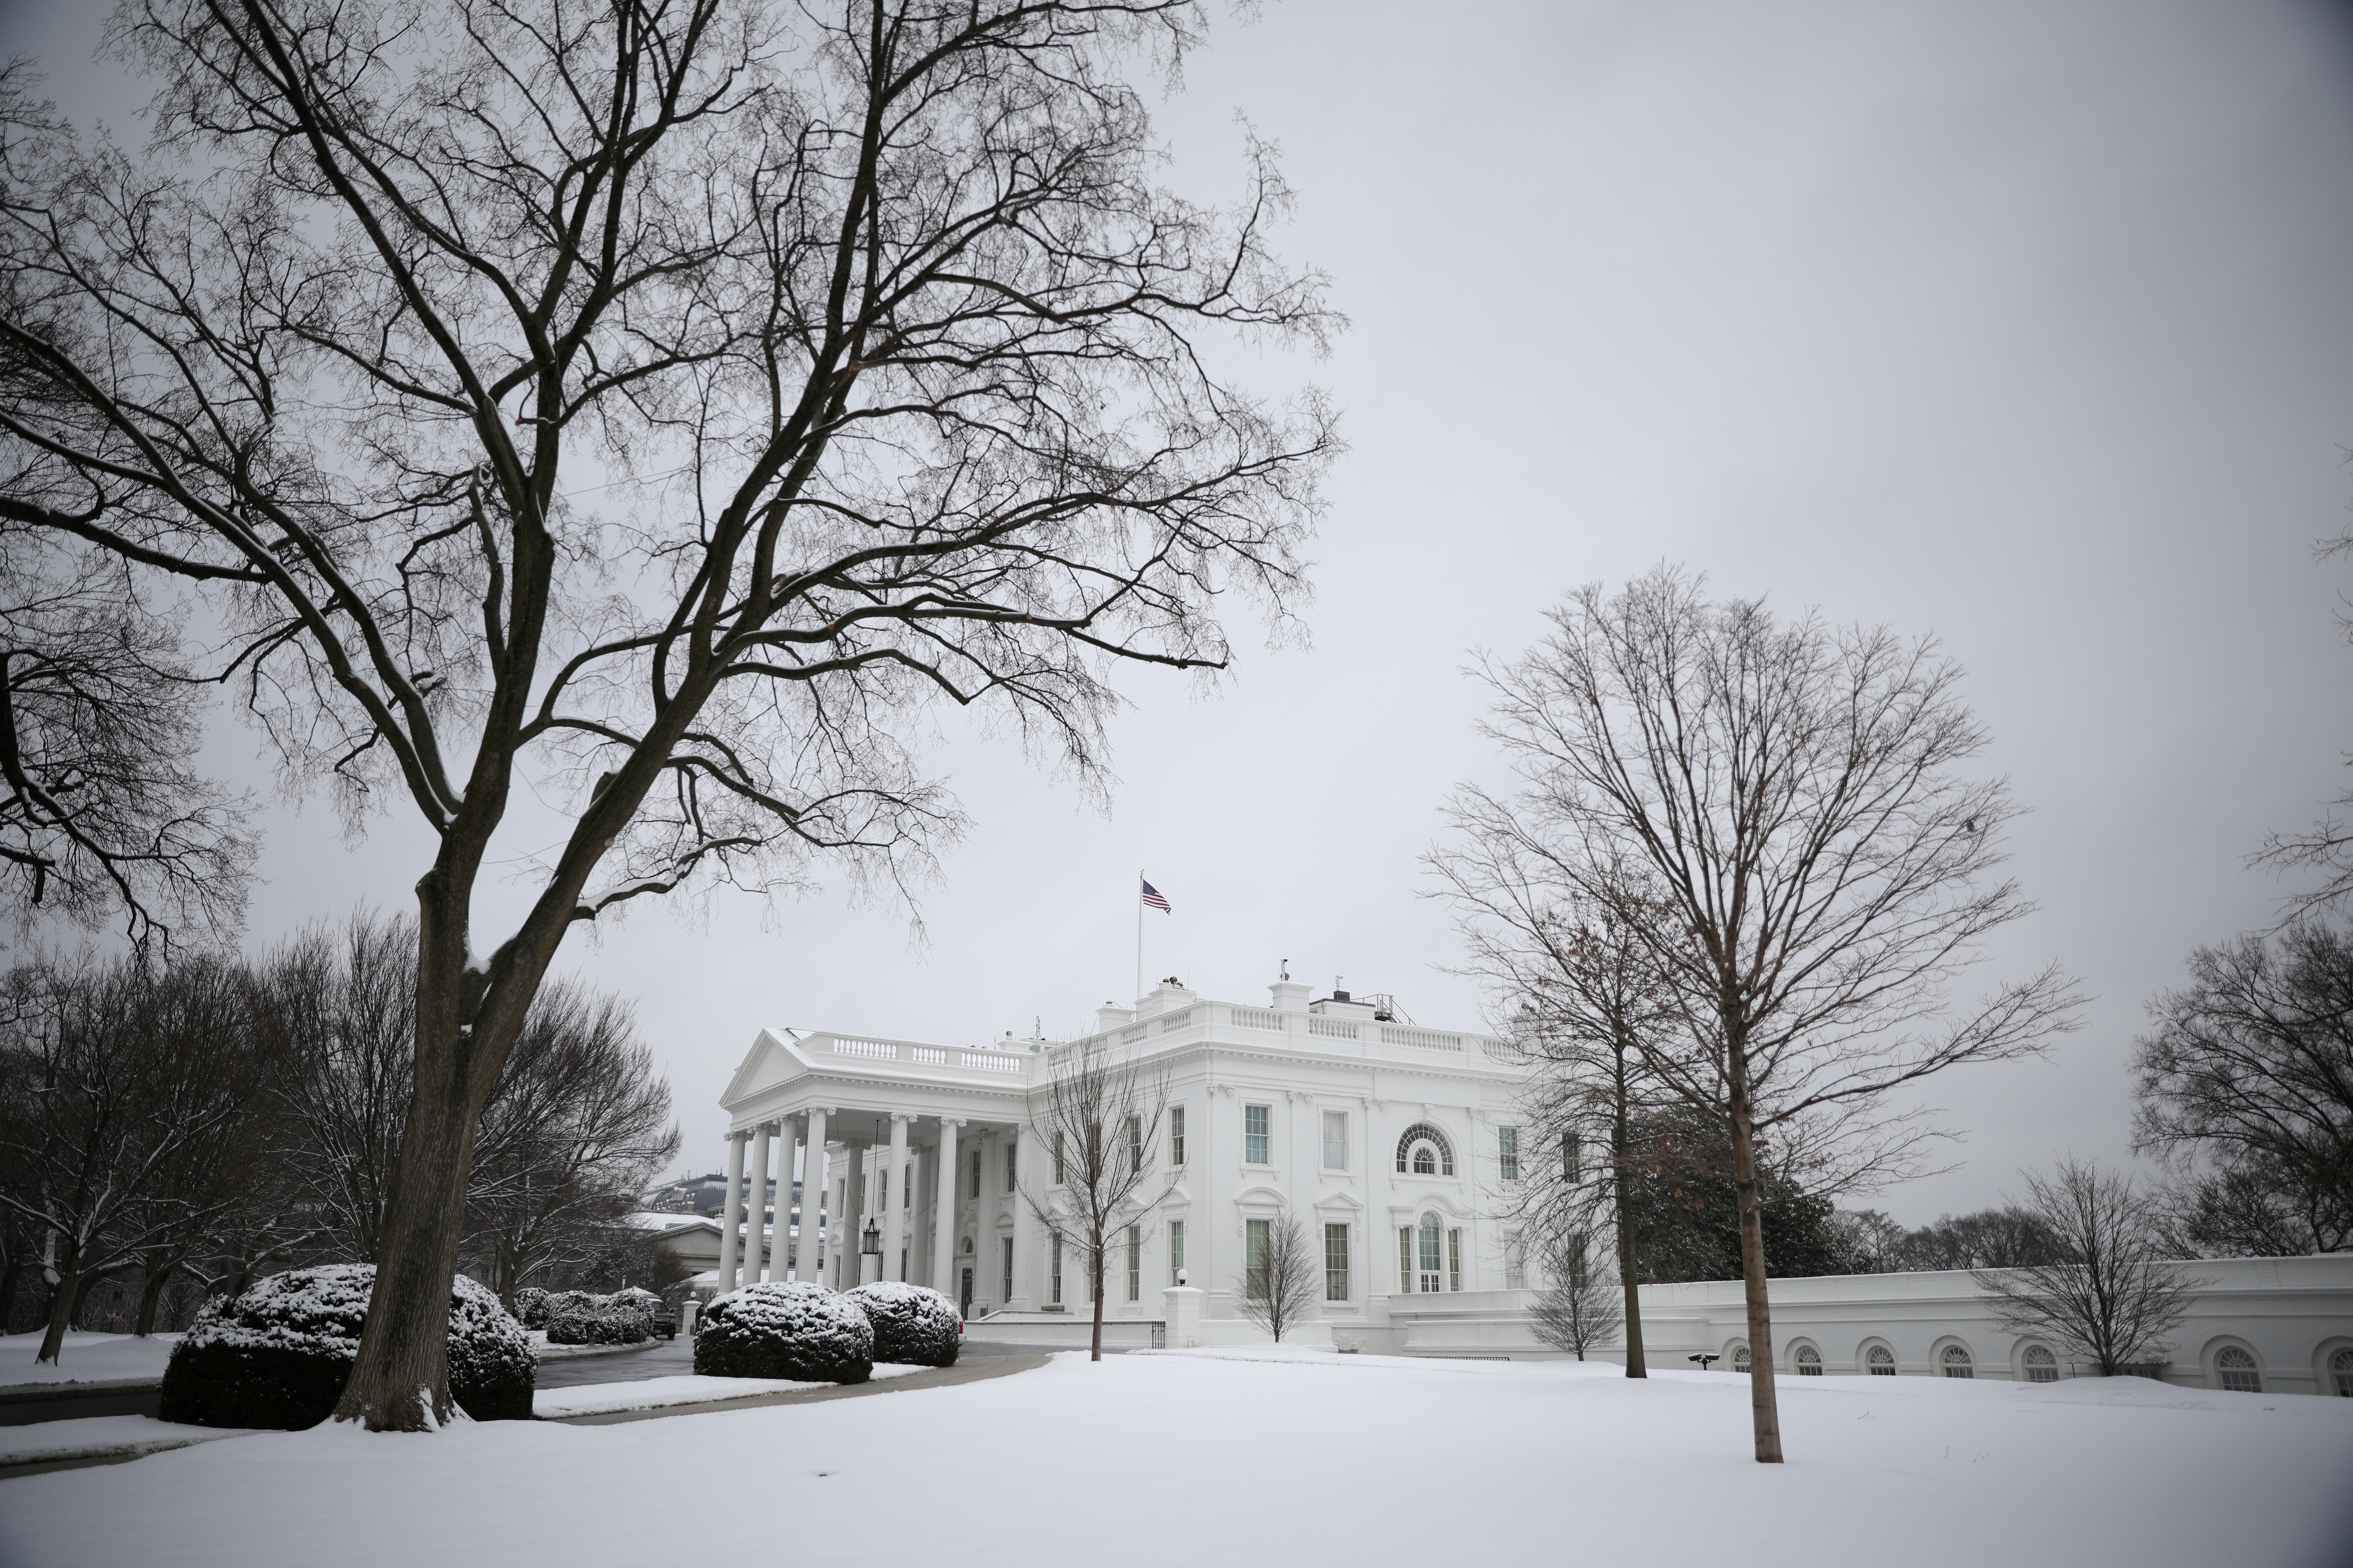 Snow from a previous day storm is seen blanketed across the White House North Lawn in Washington, U.S., February 1, 2021. REUTERS/Tom Brenner